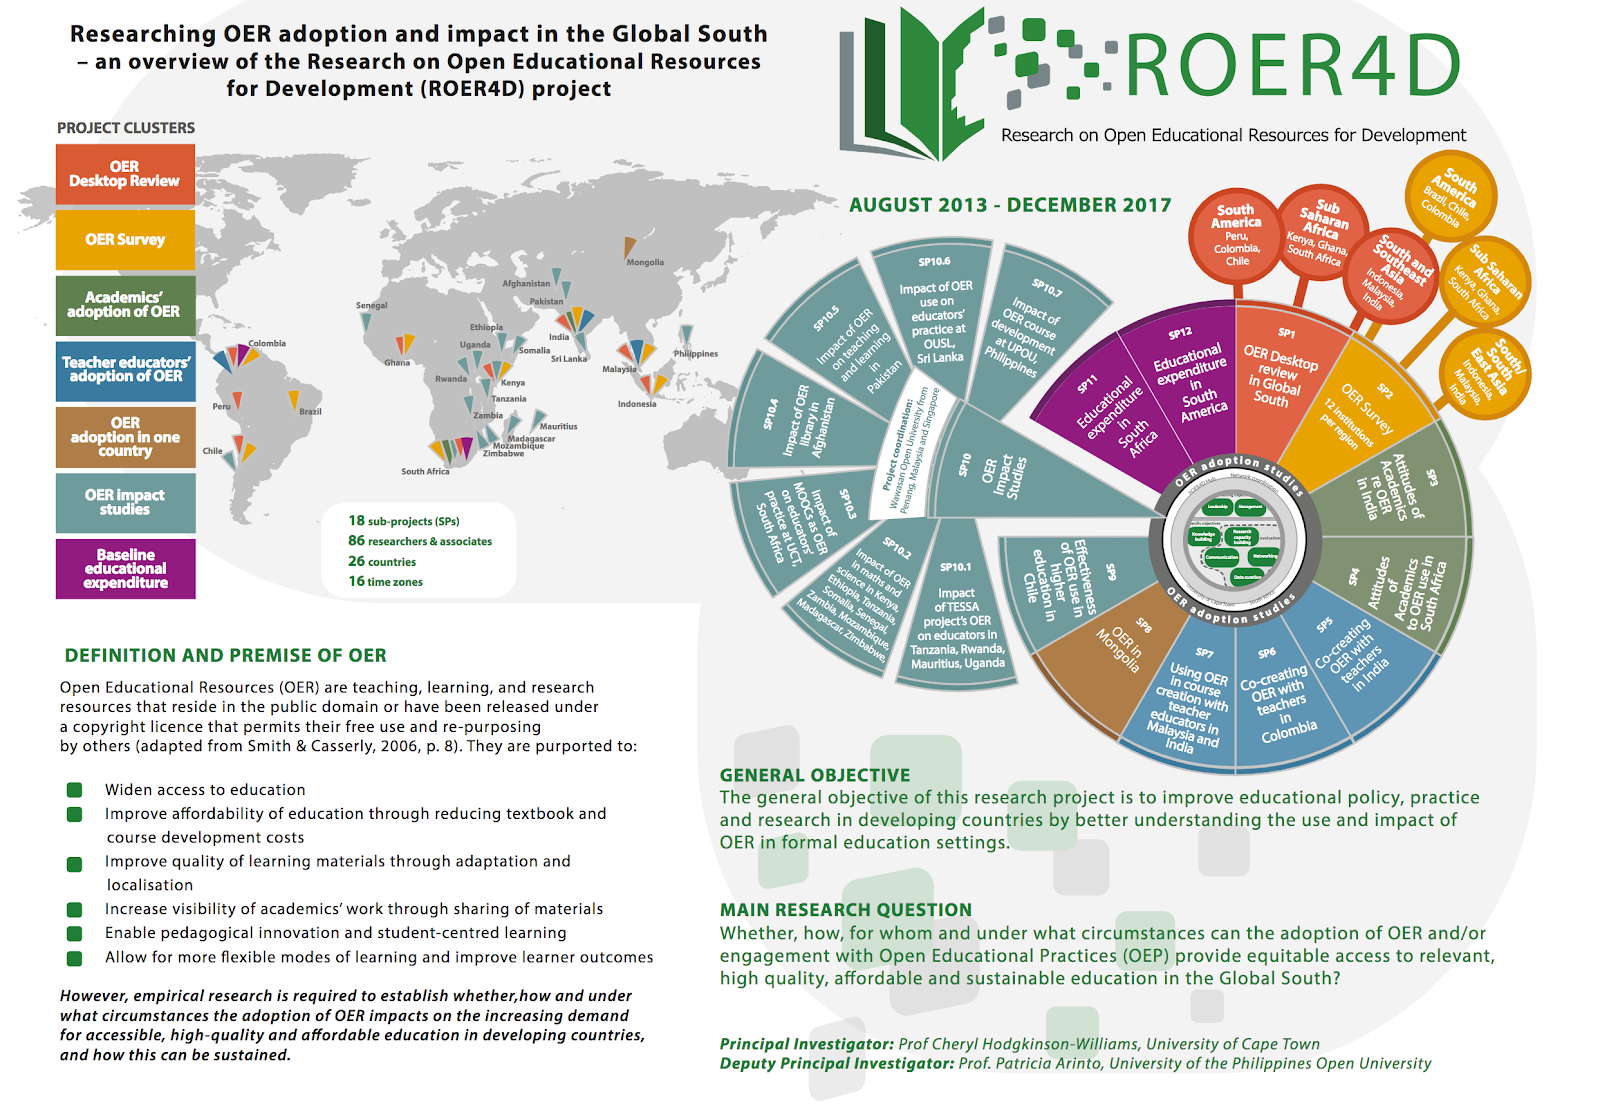 complex illustration depicting the multiple projects and findings of the ROER4D project